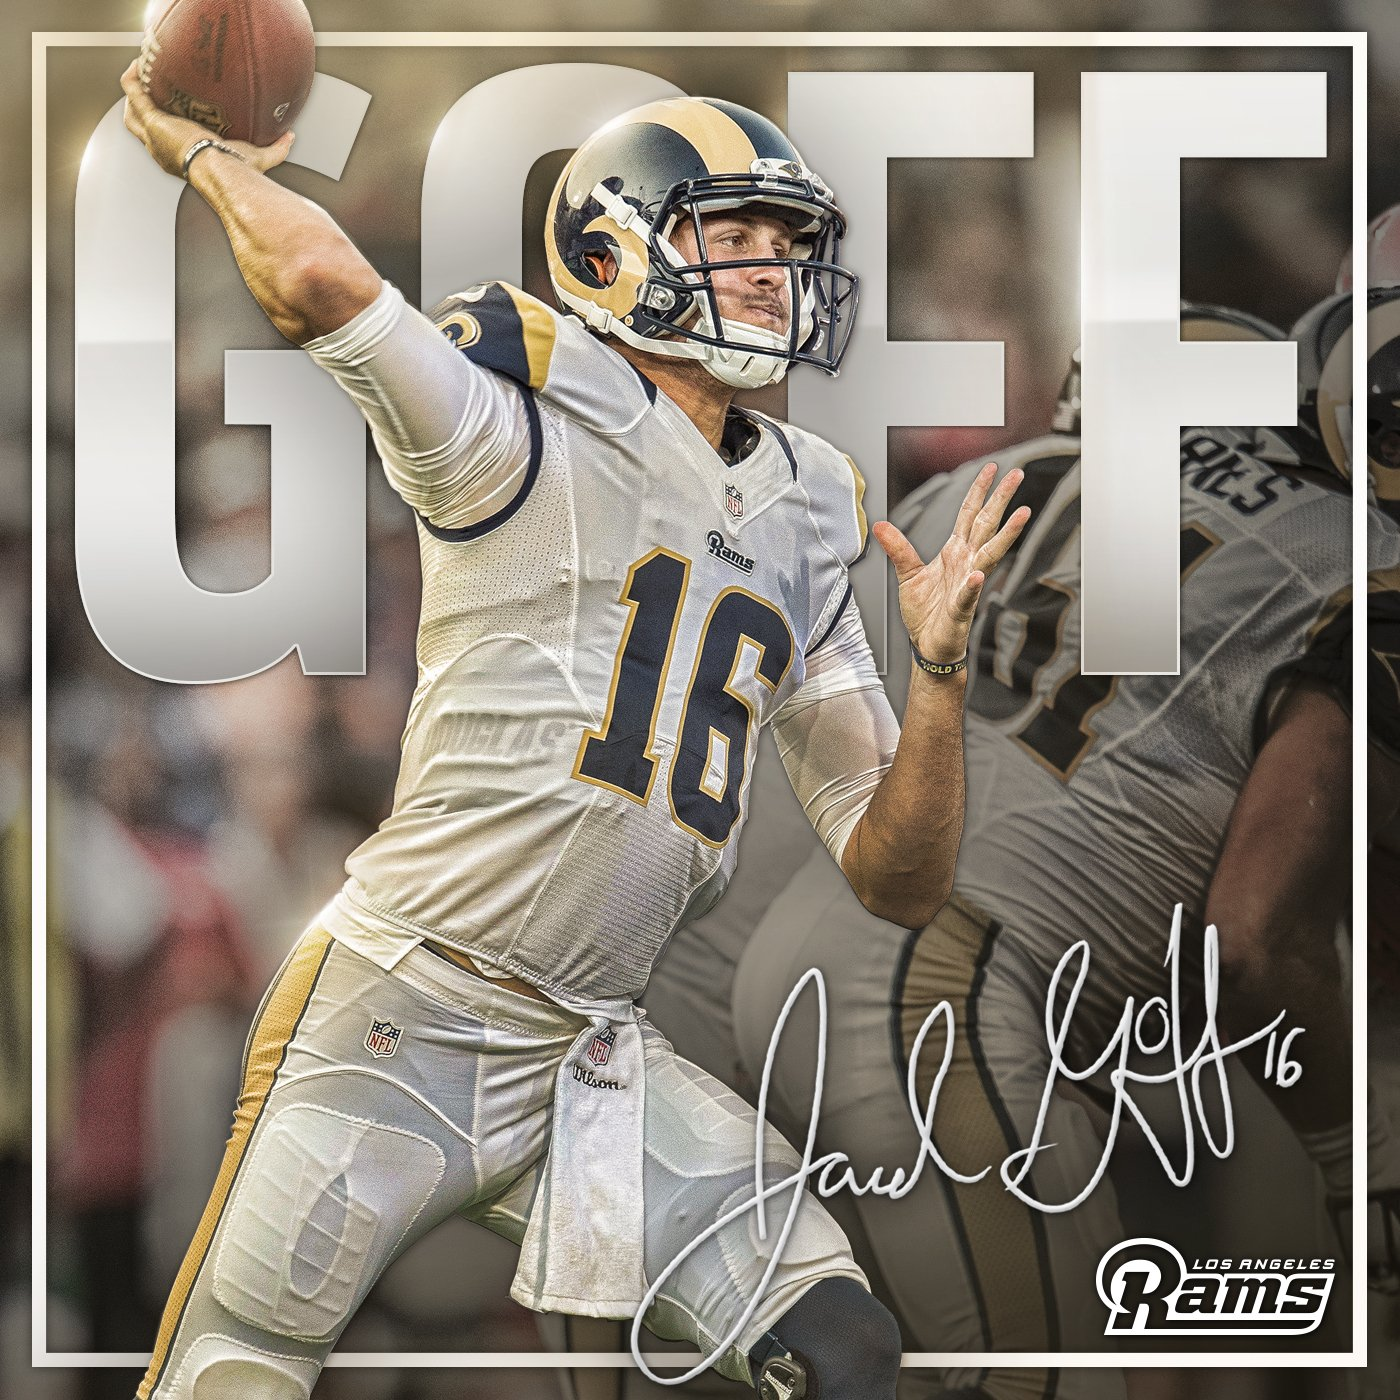 It's Showtime!  Rookie @JaredGoff16 named #Rams starting QB �� | https://t.co/GteV7jHGmm https://t.co/upcoxoAtLp